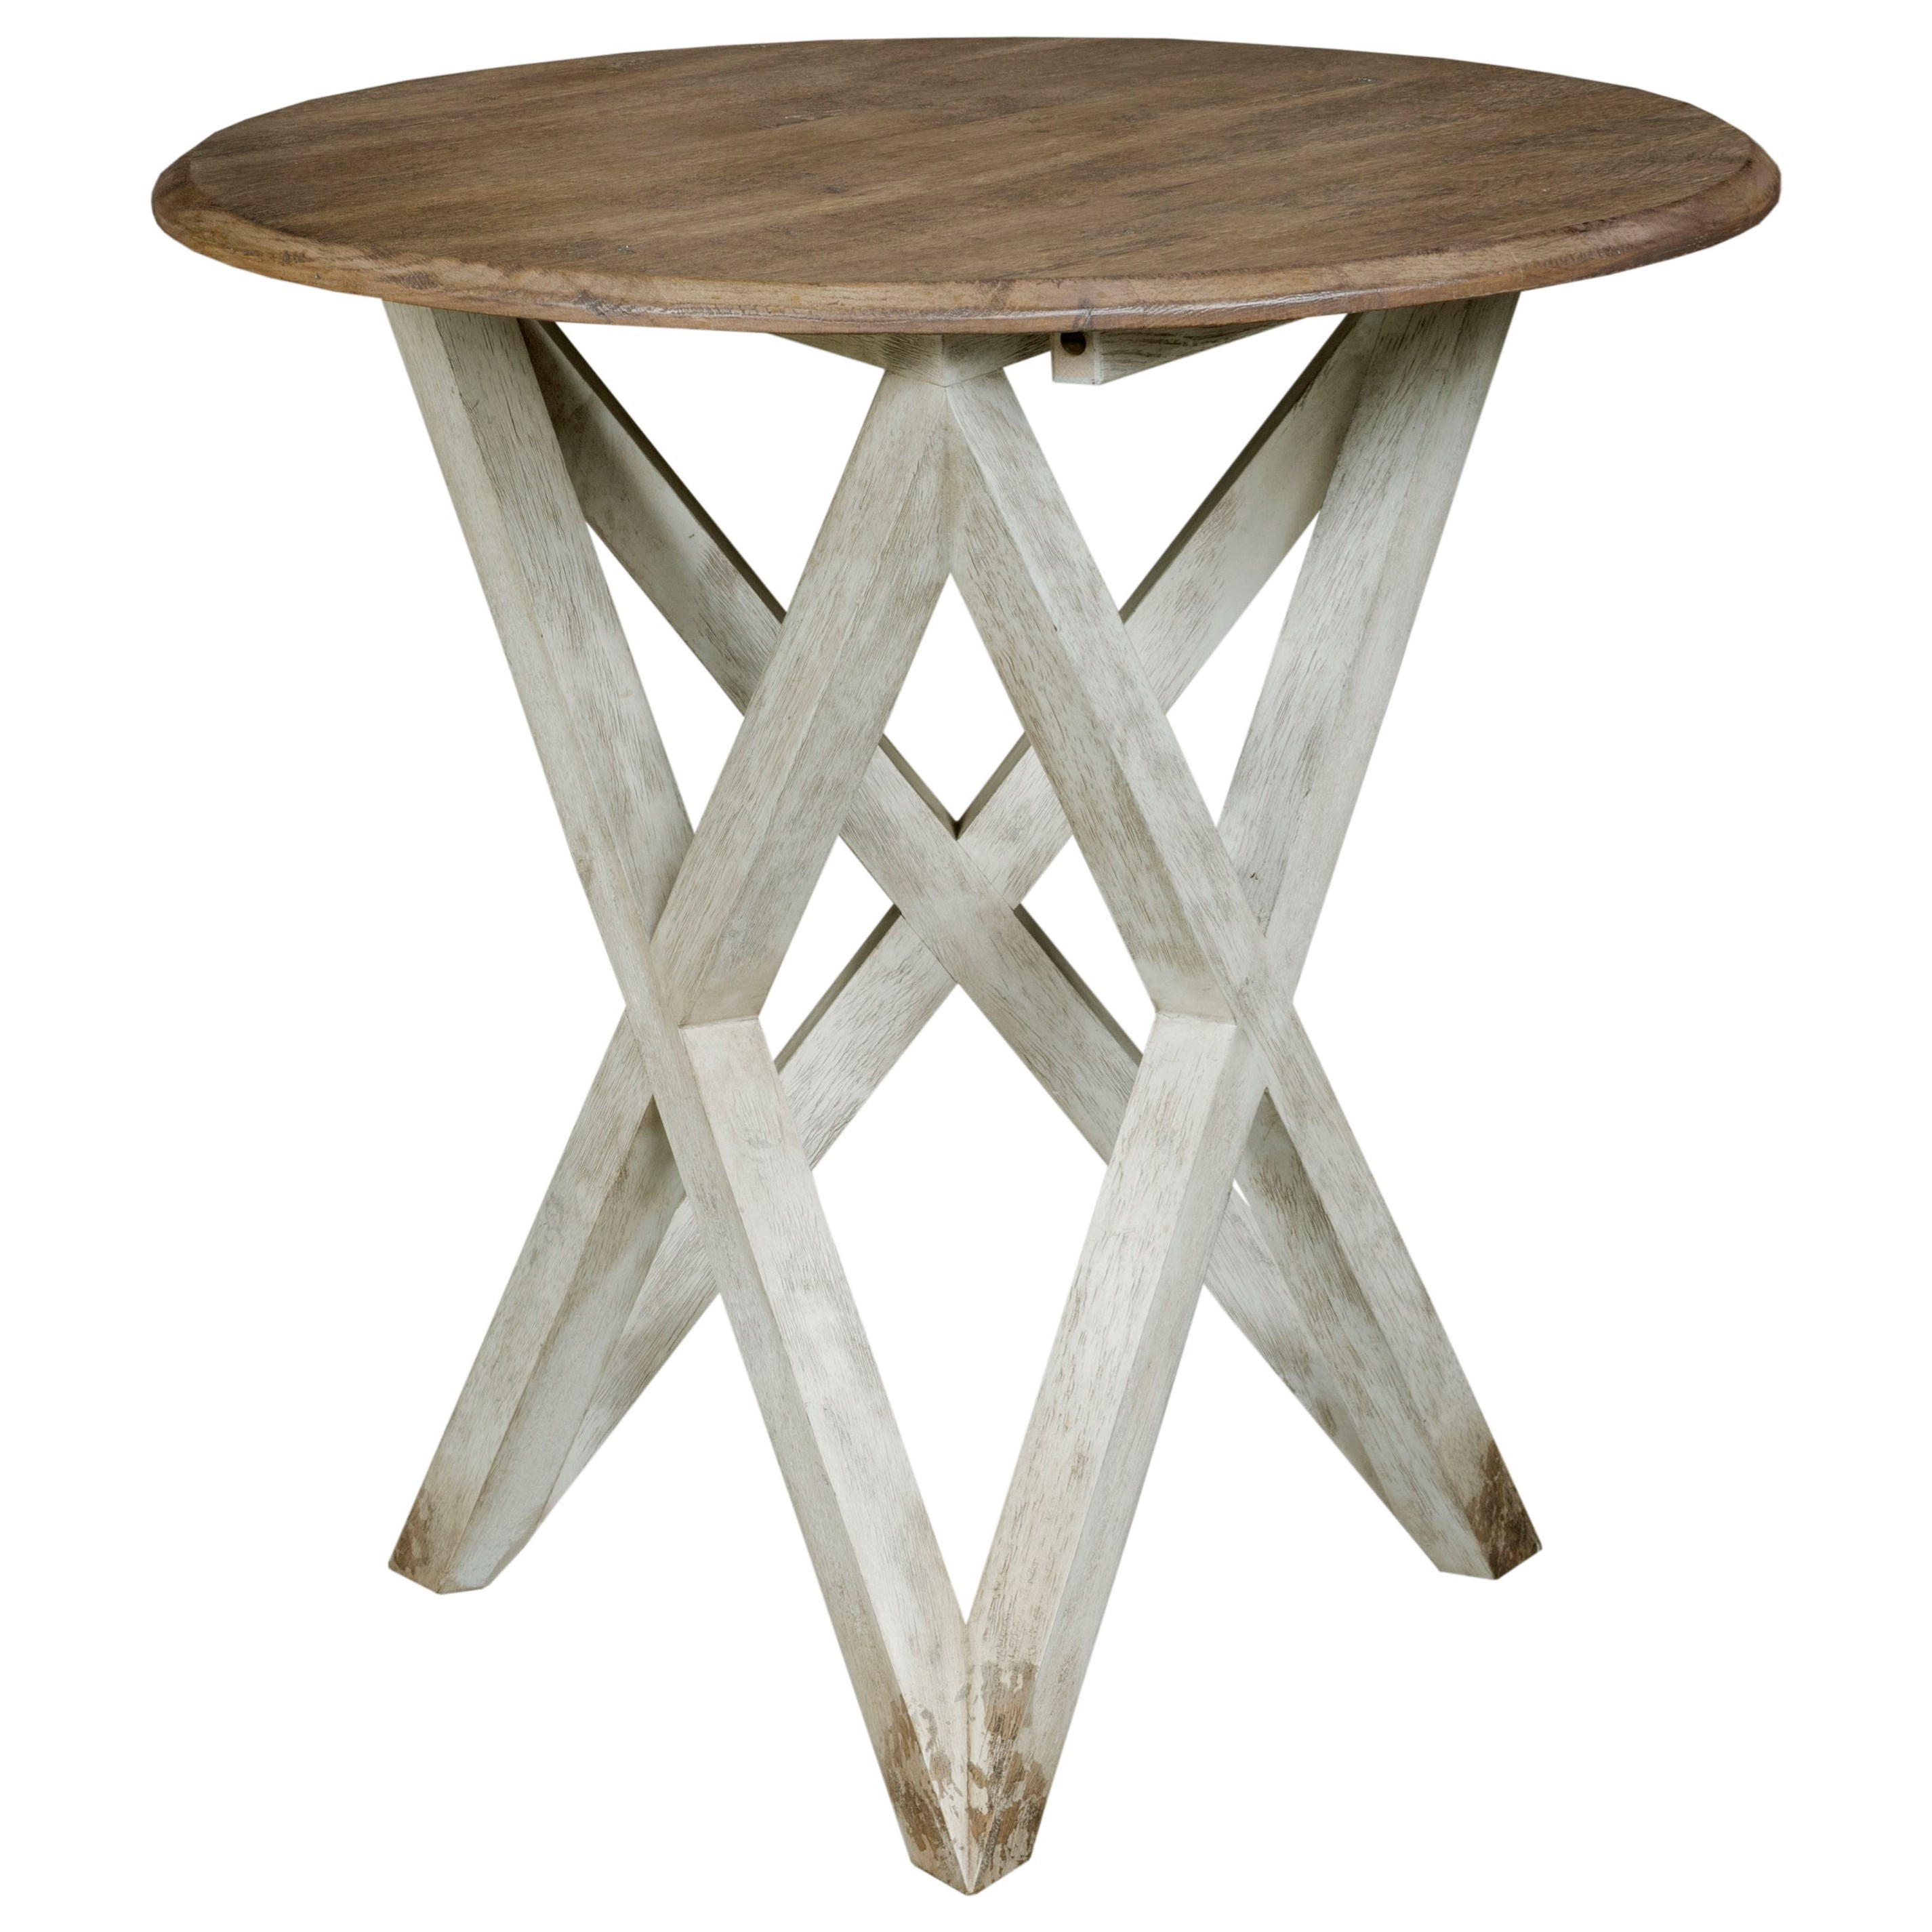 Trails Colton Round Lamp Table by Kincaid Furniture at Pedigo Furniture